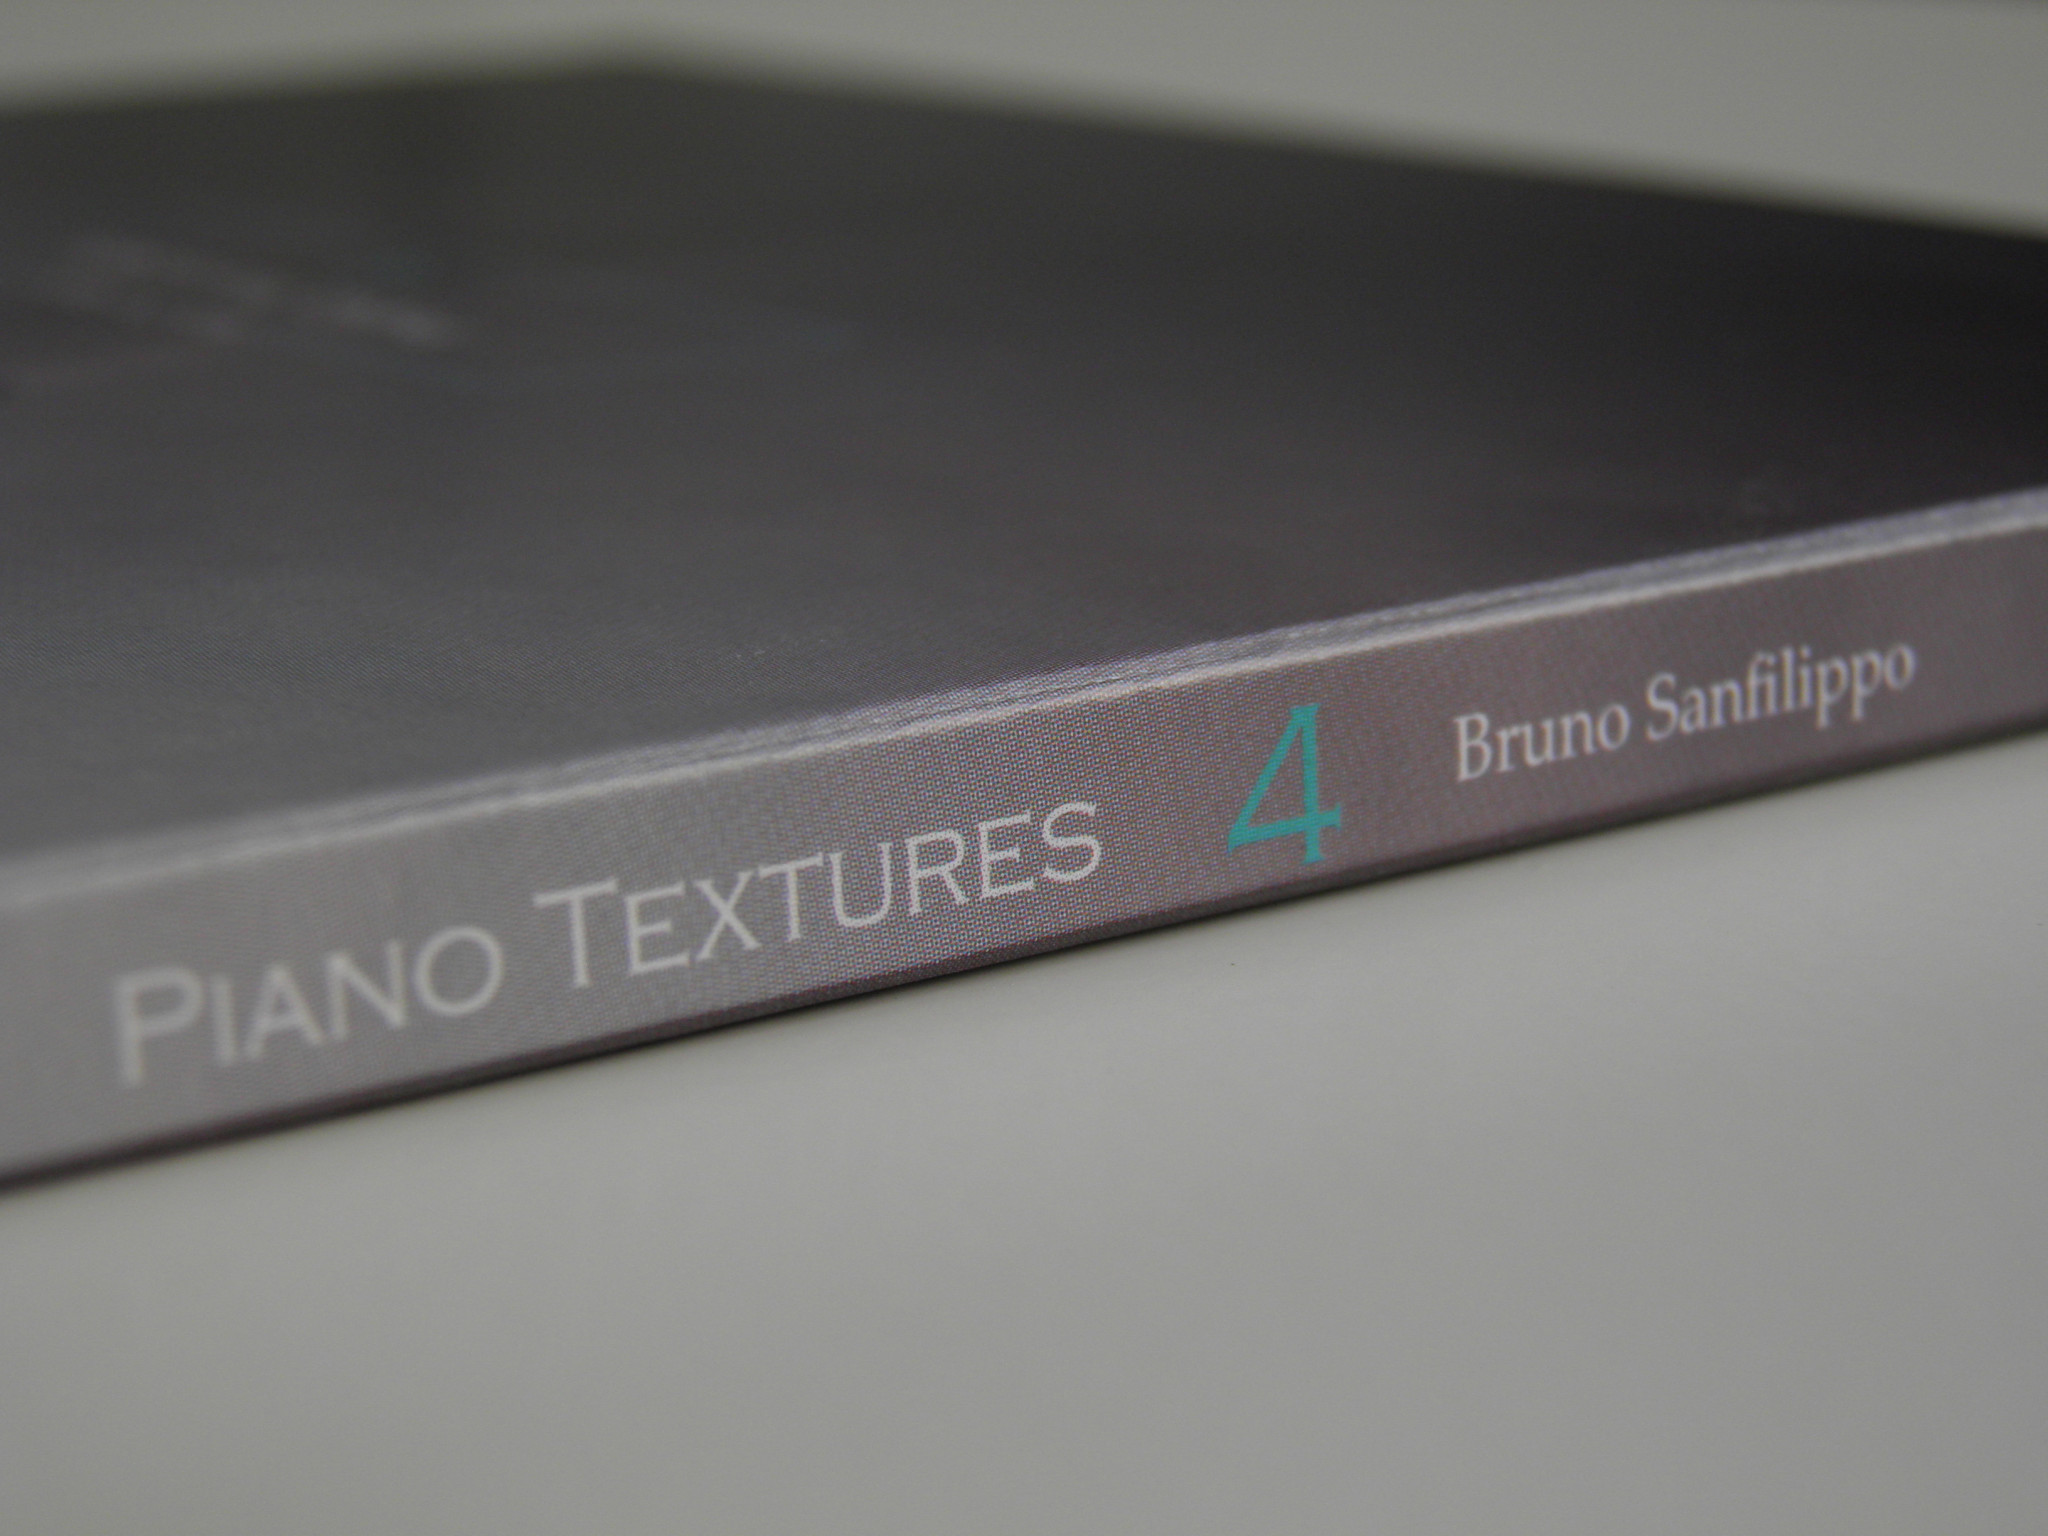 Piano Textures 4 available NOW